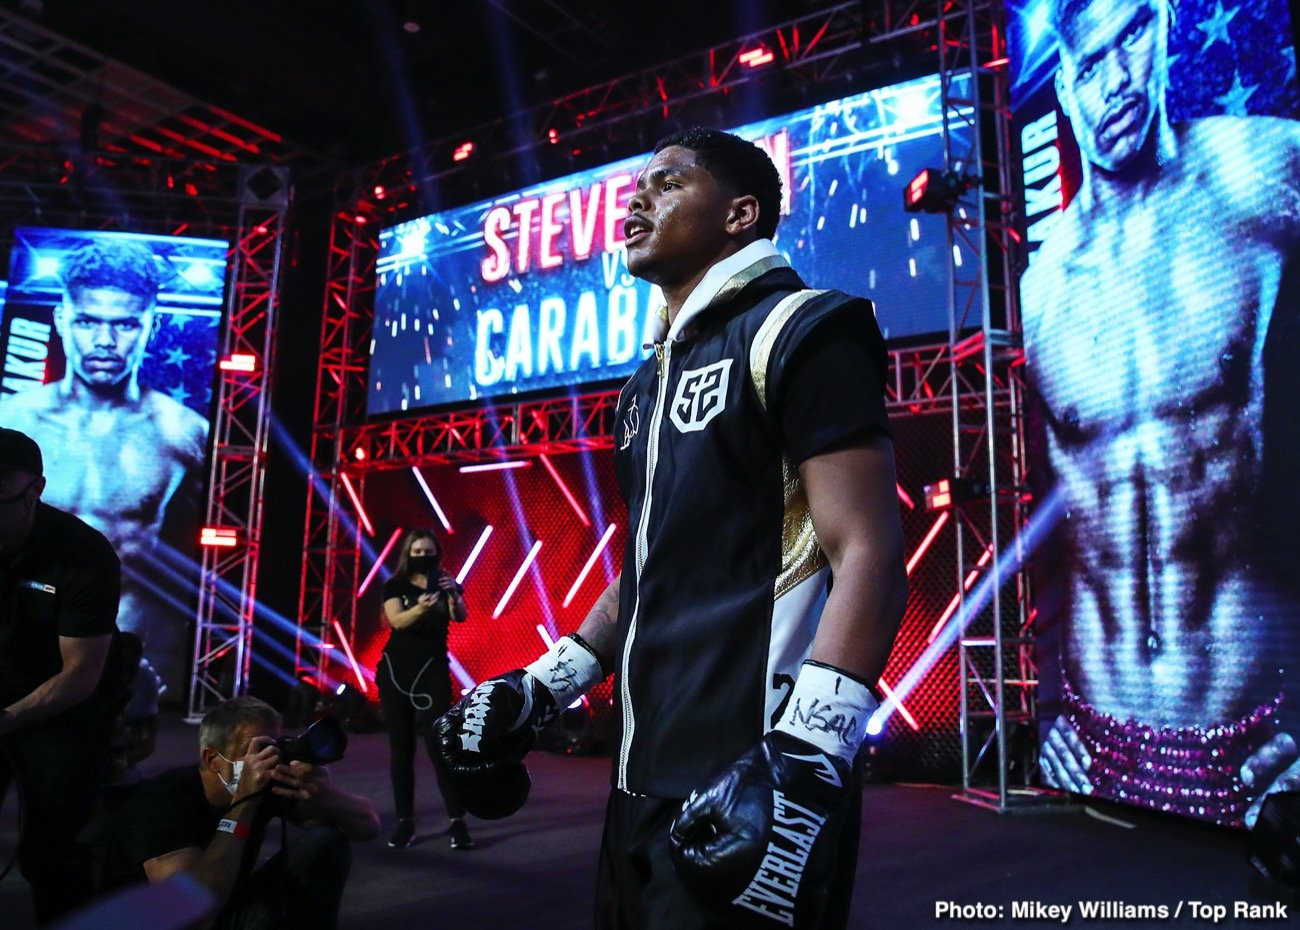 Miguel Berchelt, Shakur Stevenson - Shakur Stevenson has decided to stay at 130 following his victory over Felix Caraballo on June 9, and he wants to after the best in the division. At super featherweight, Stevenson is interested in facing WBC champion Miguel Berchelt according to Mike Coppinger.